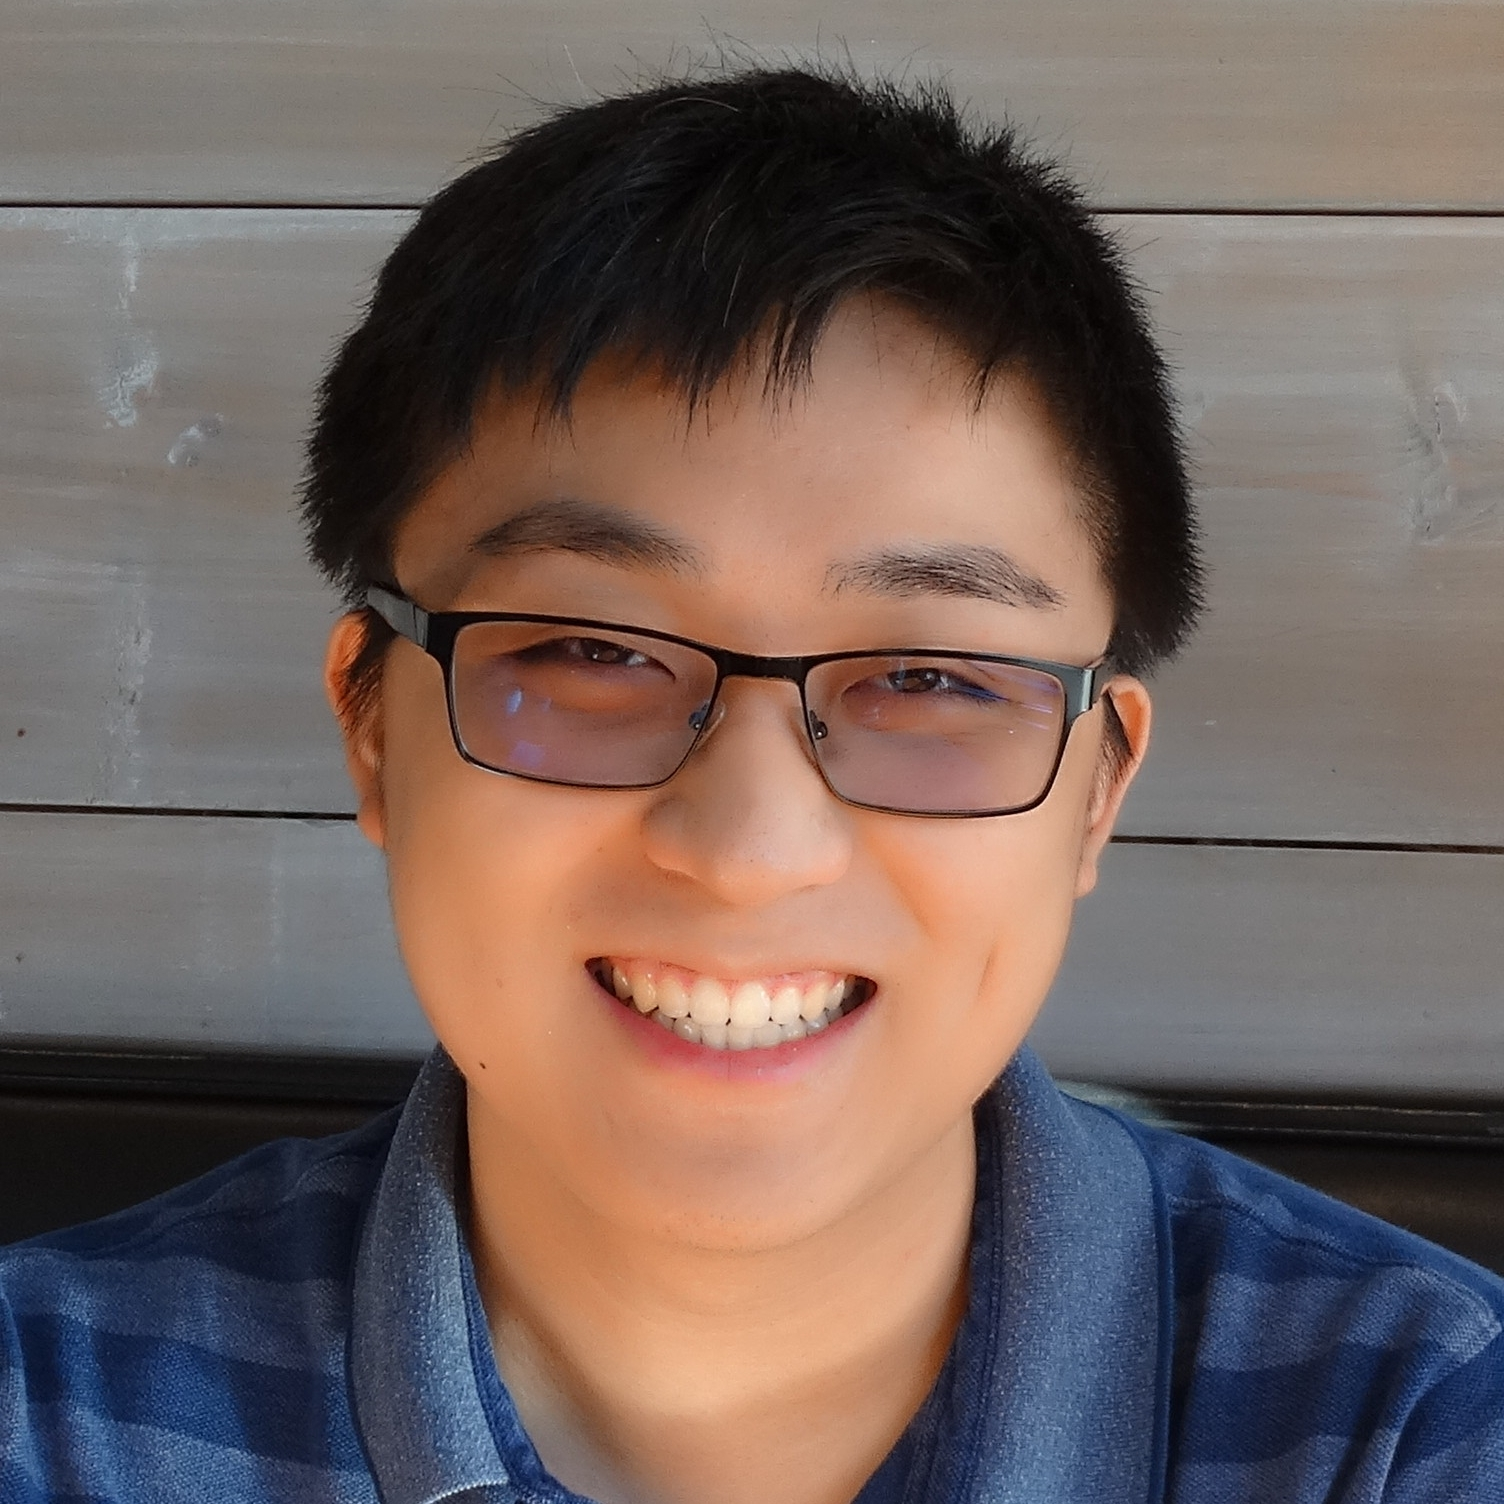 Jesse Lin '22 - Director of FinanceJesse is a freshman in Forbes College from Lincoln, Nebraska, and is planning on majoring in physics. He is interested in sustainability design, energy technology, and science policy. Jesse's other interests include continental philosophy, politics, and music.